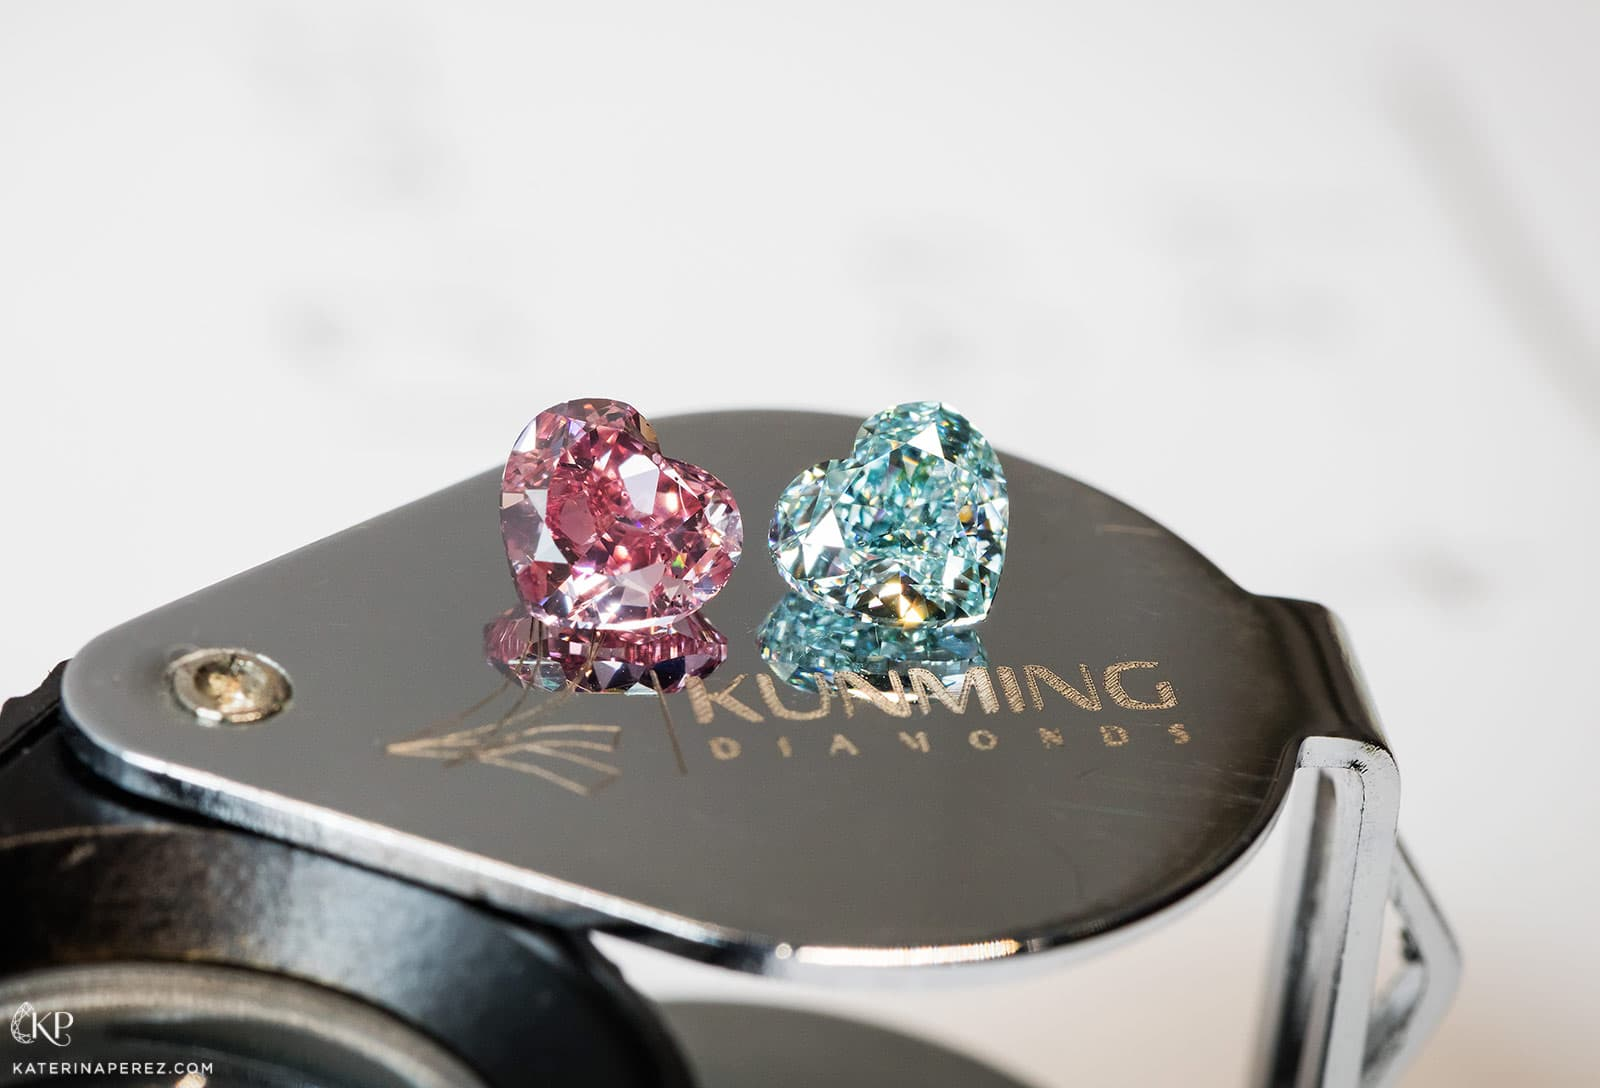 Kunming Diamonds 0,71 cts fancy intense pink and 0,72 cts fancy intense blue diamonds. Photo by Simon Martner